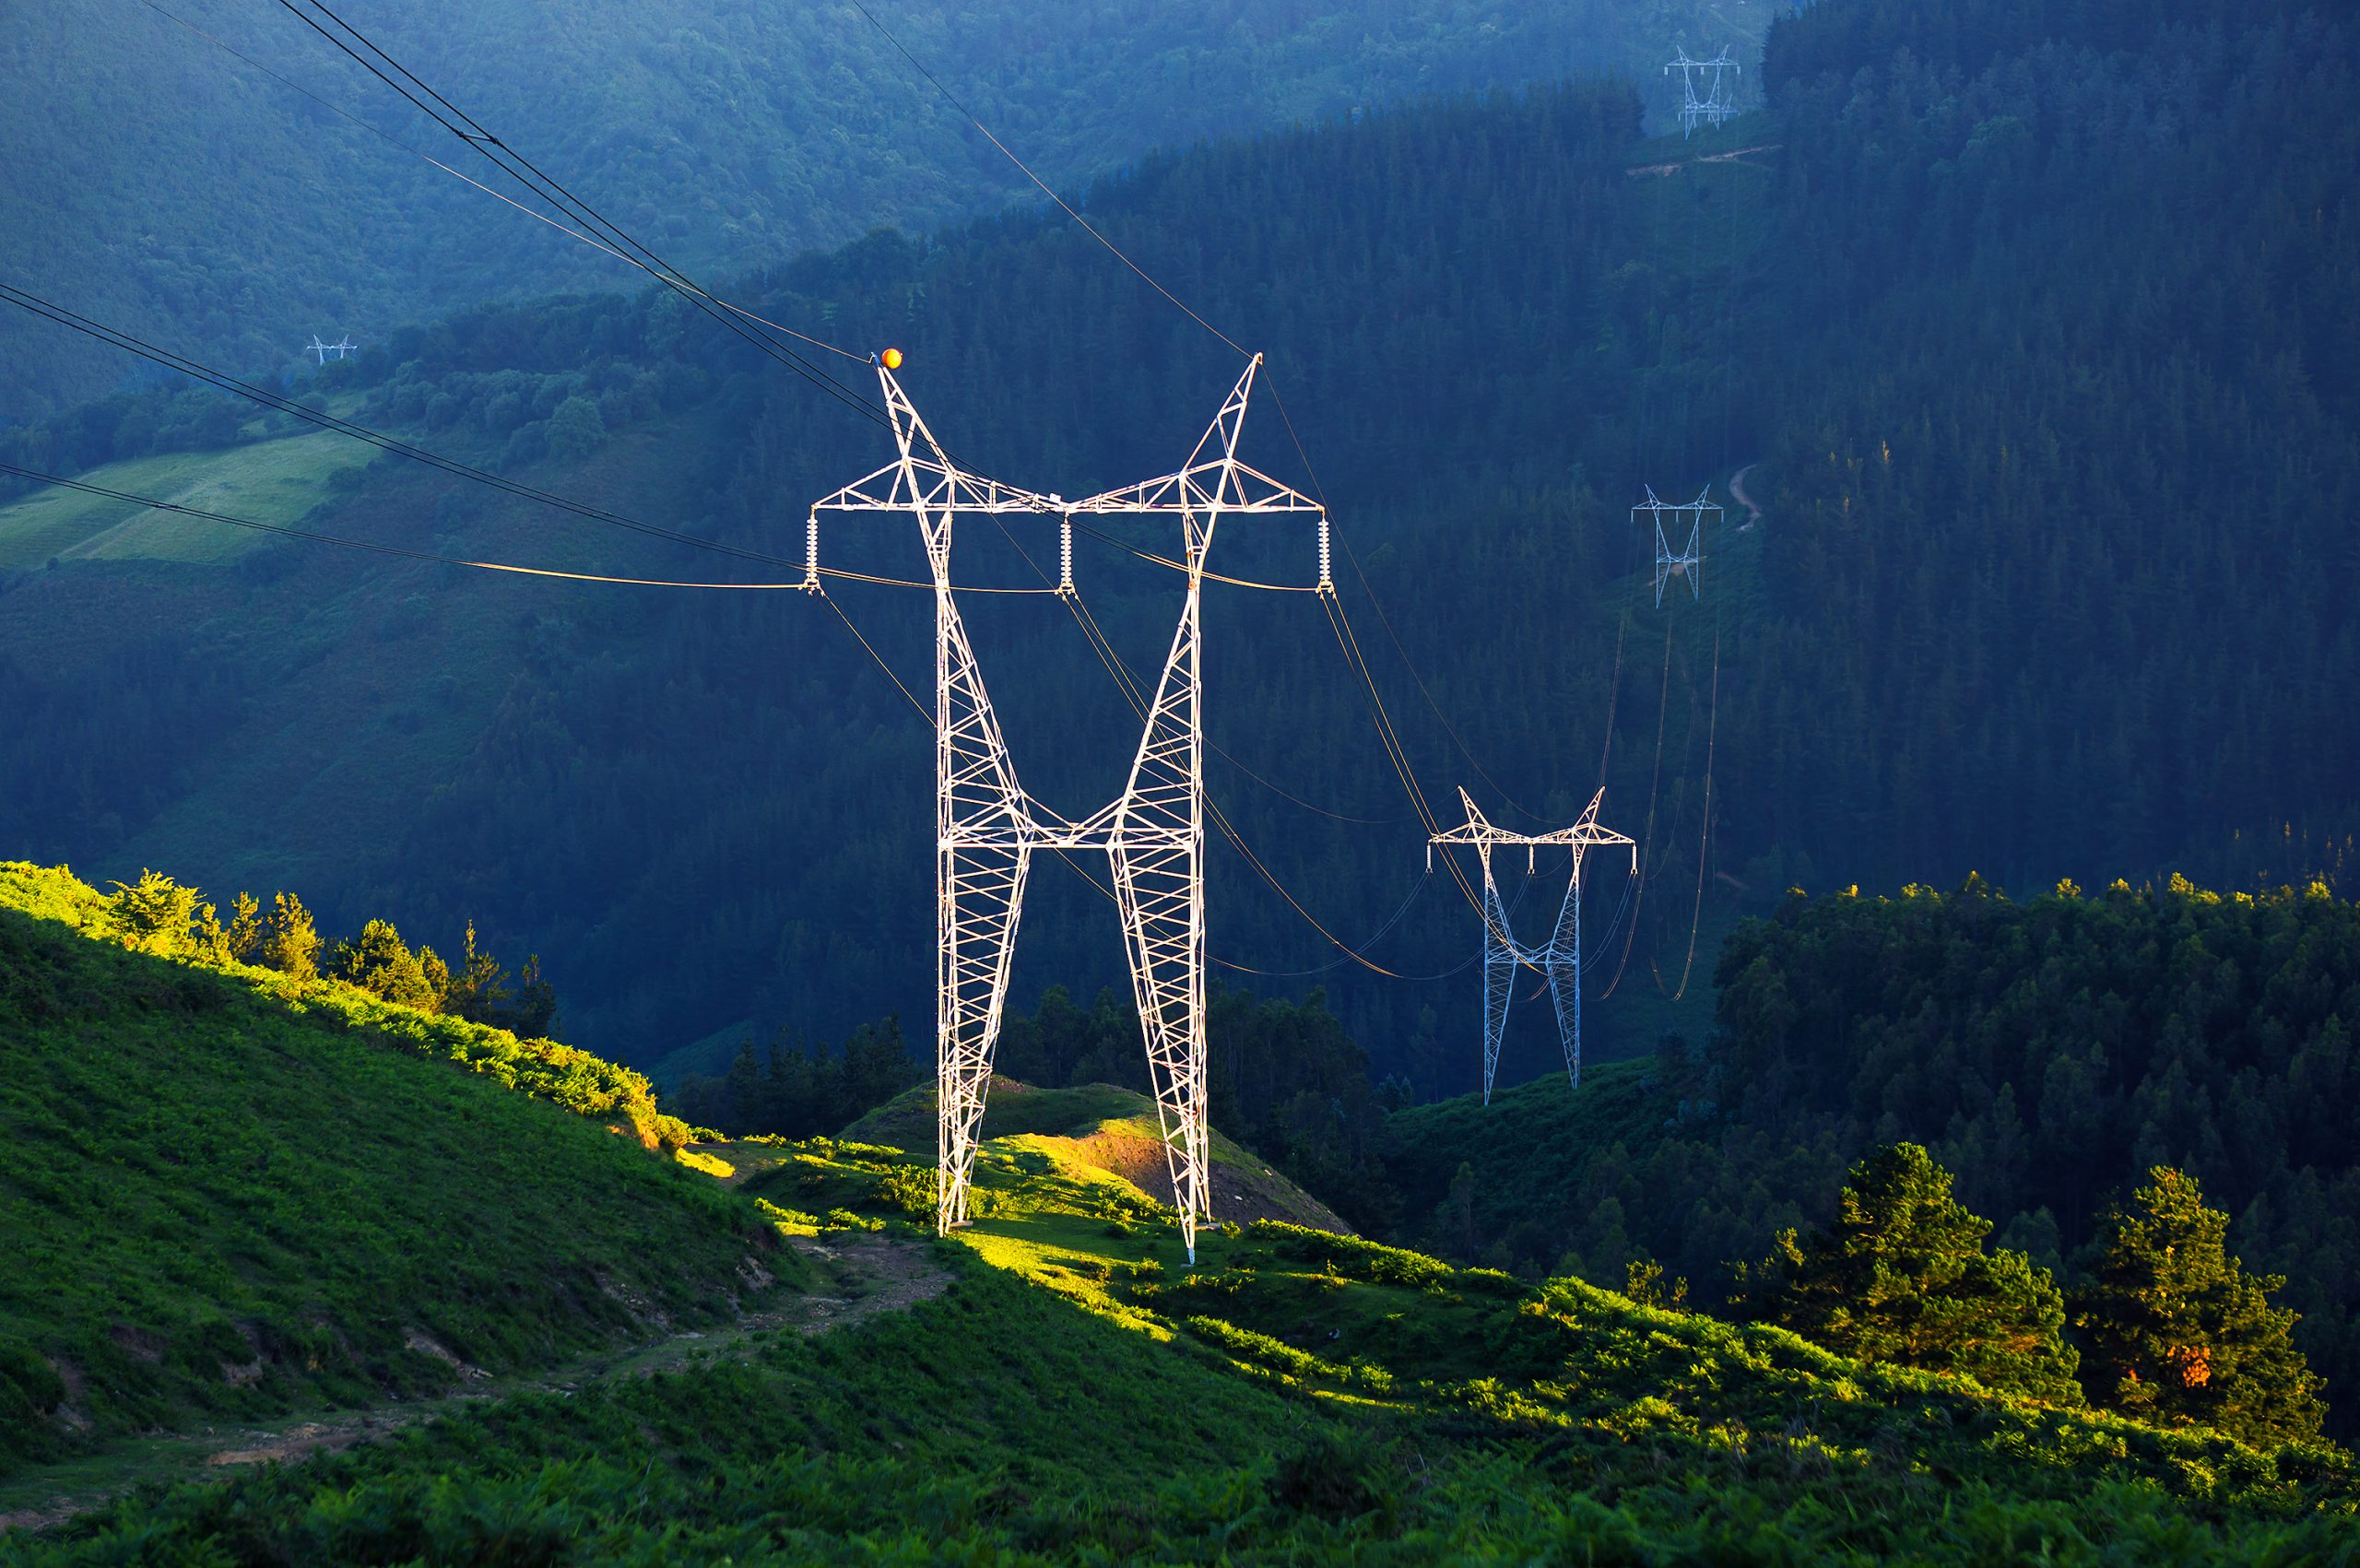 Advancing the Utilities Industry Through Digital Transformation overlay image